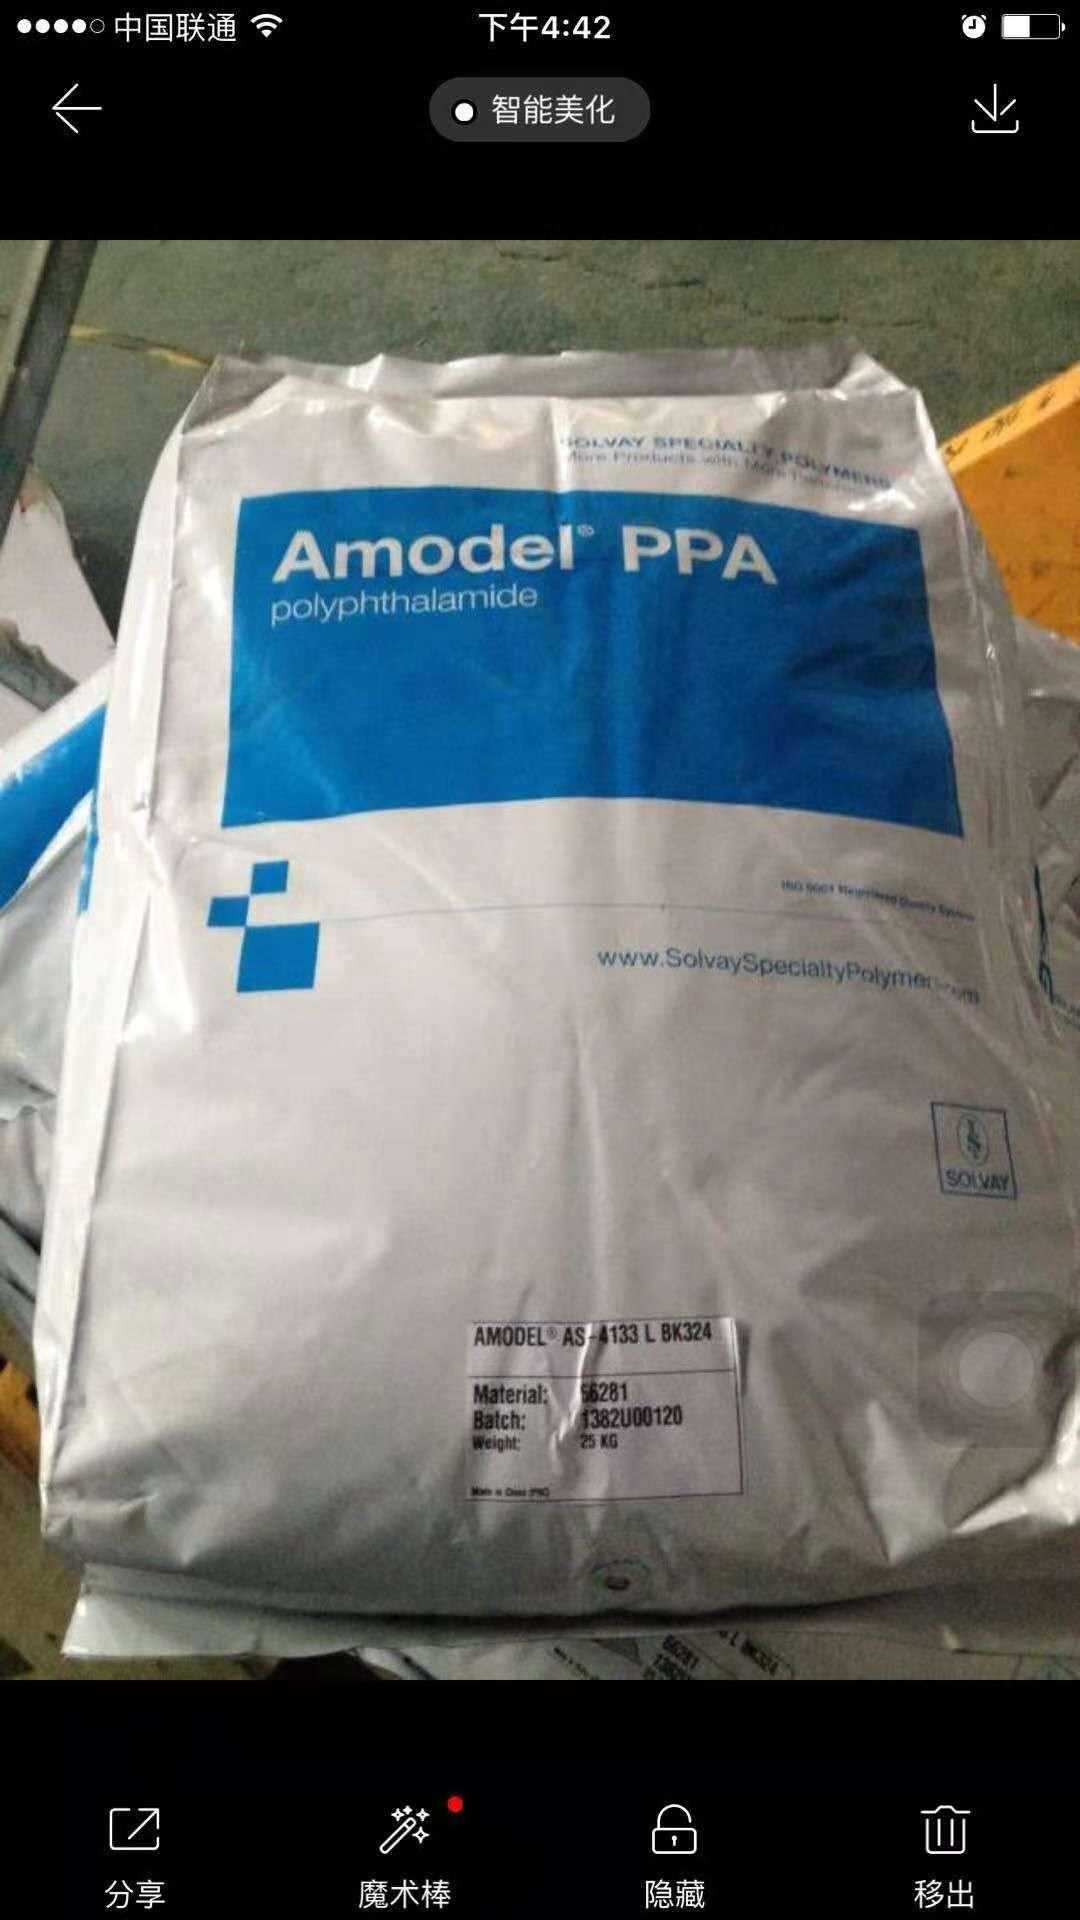 AMODEL AS-4133L BK324